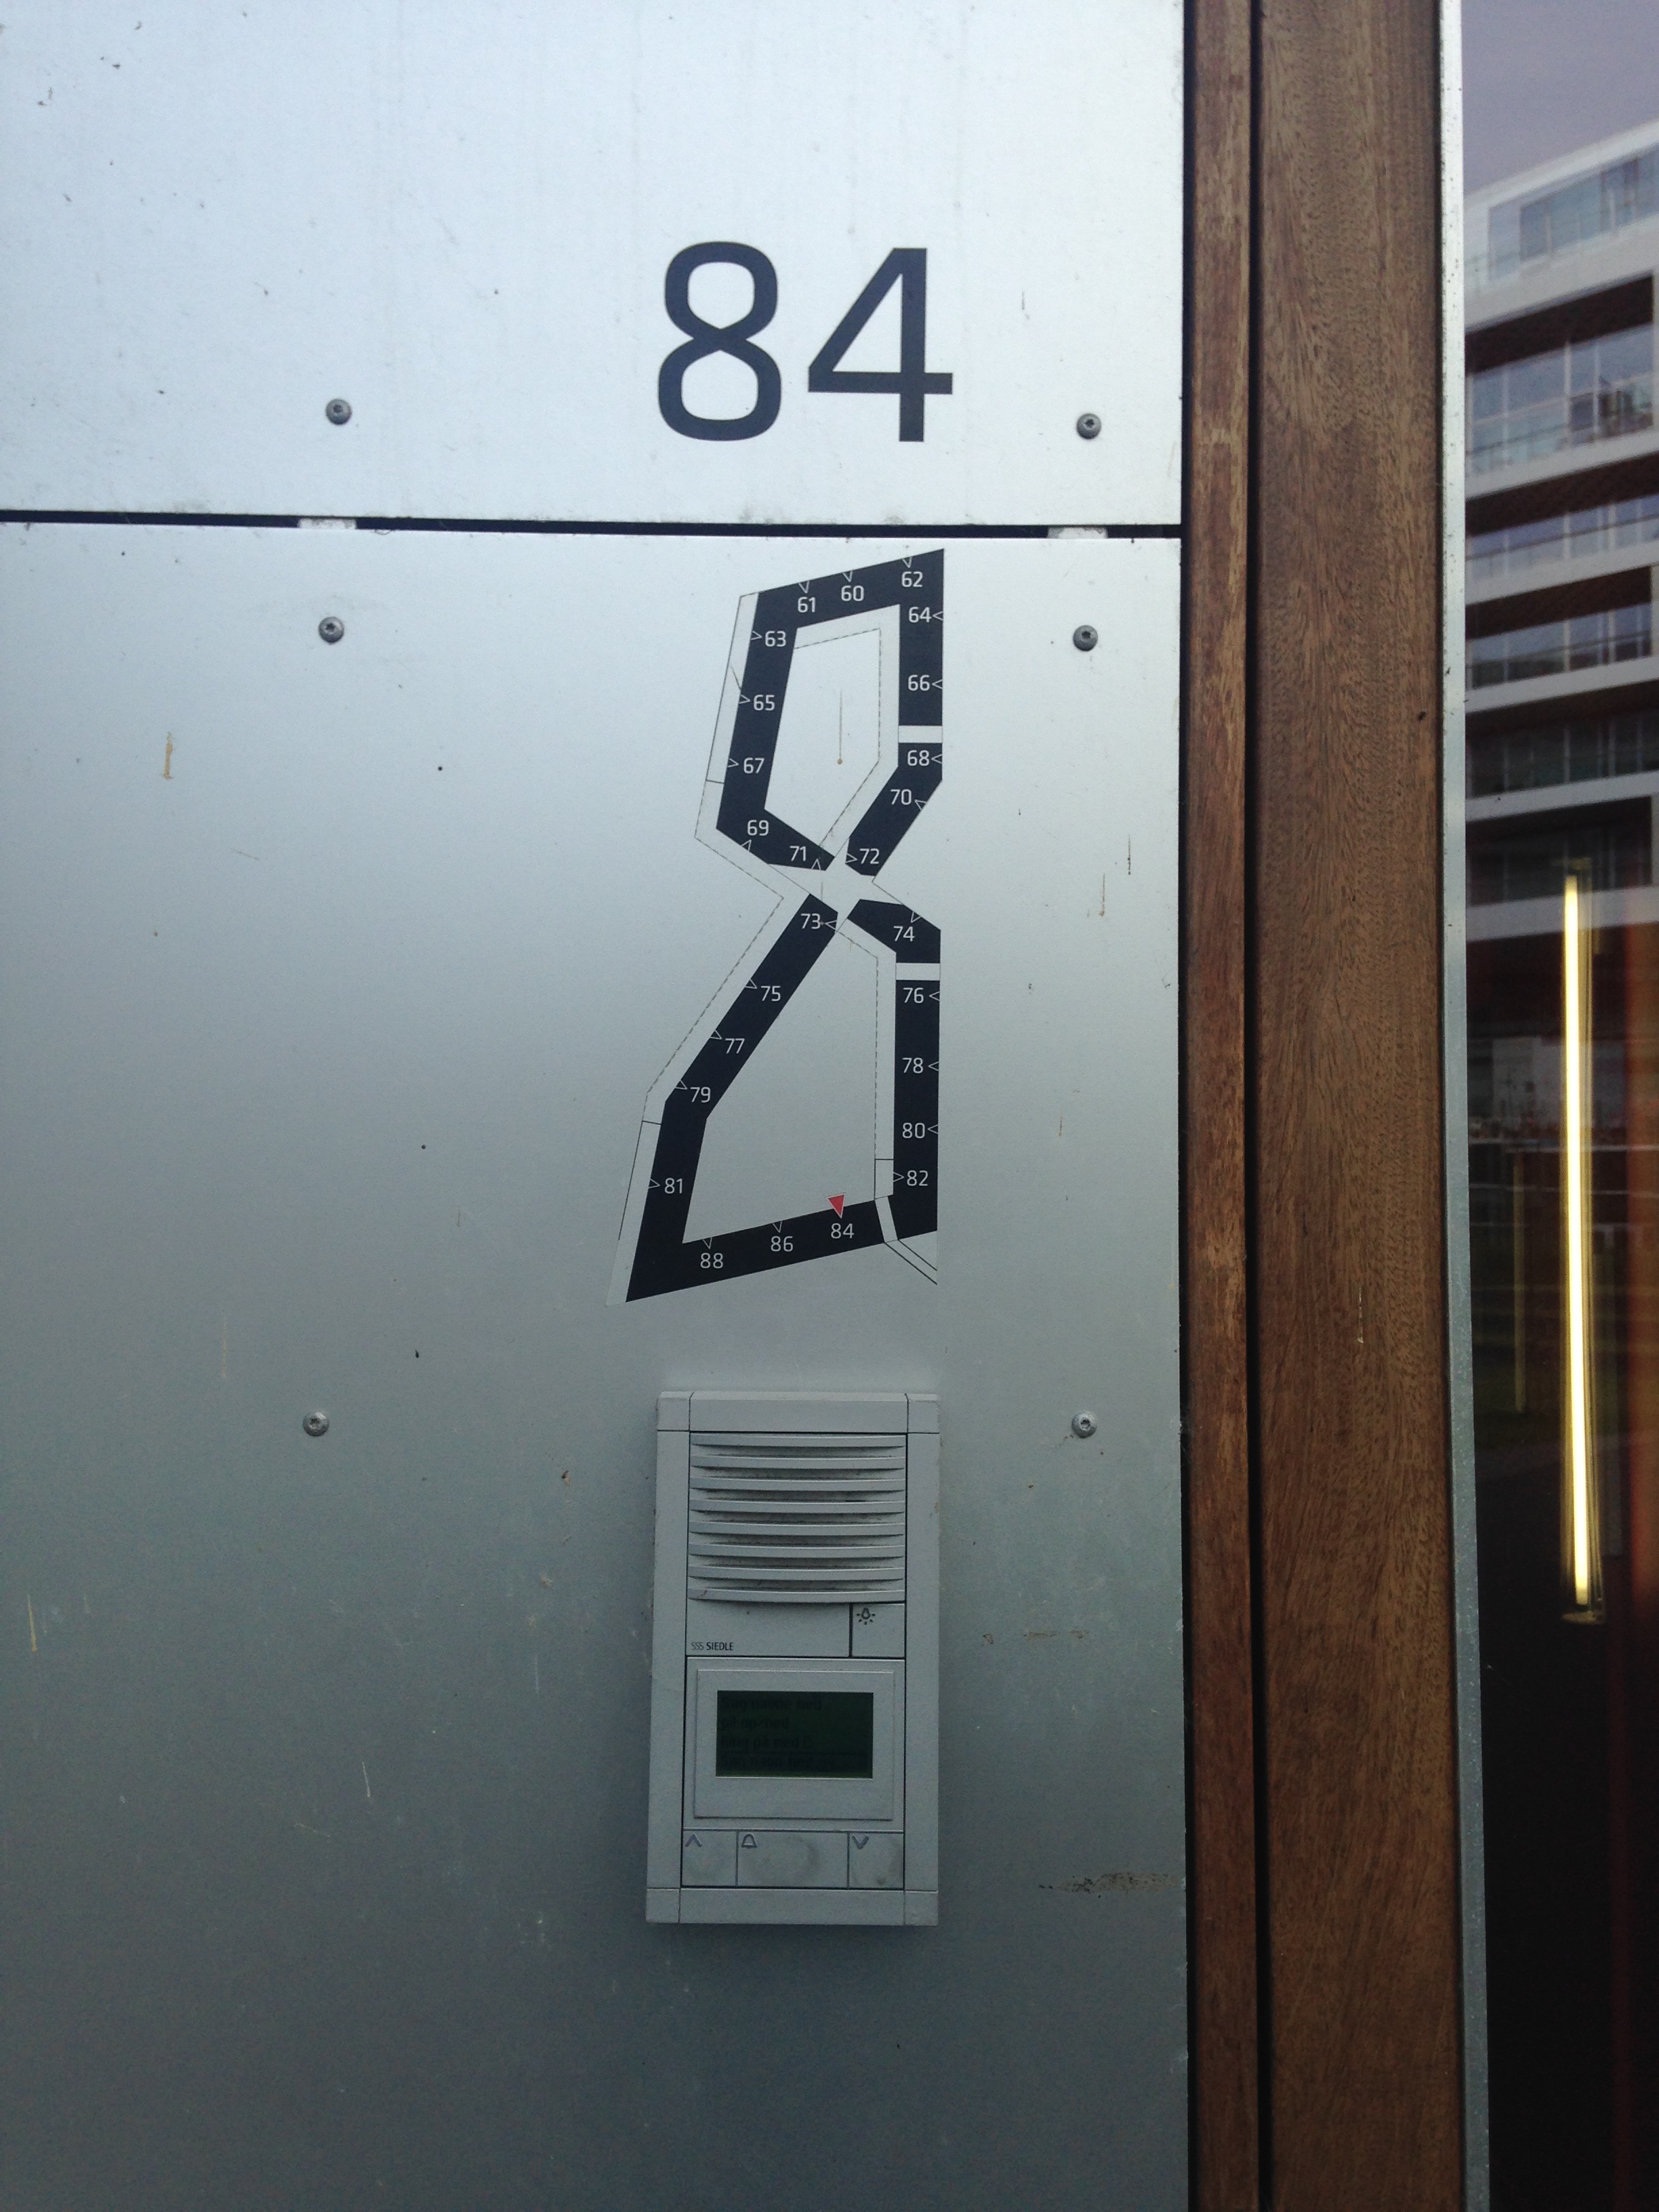 number-graphic-copenhagen.jpg